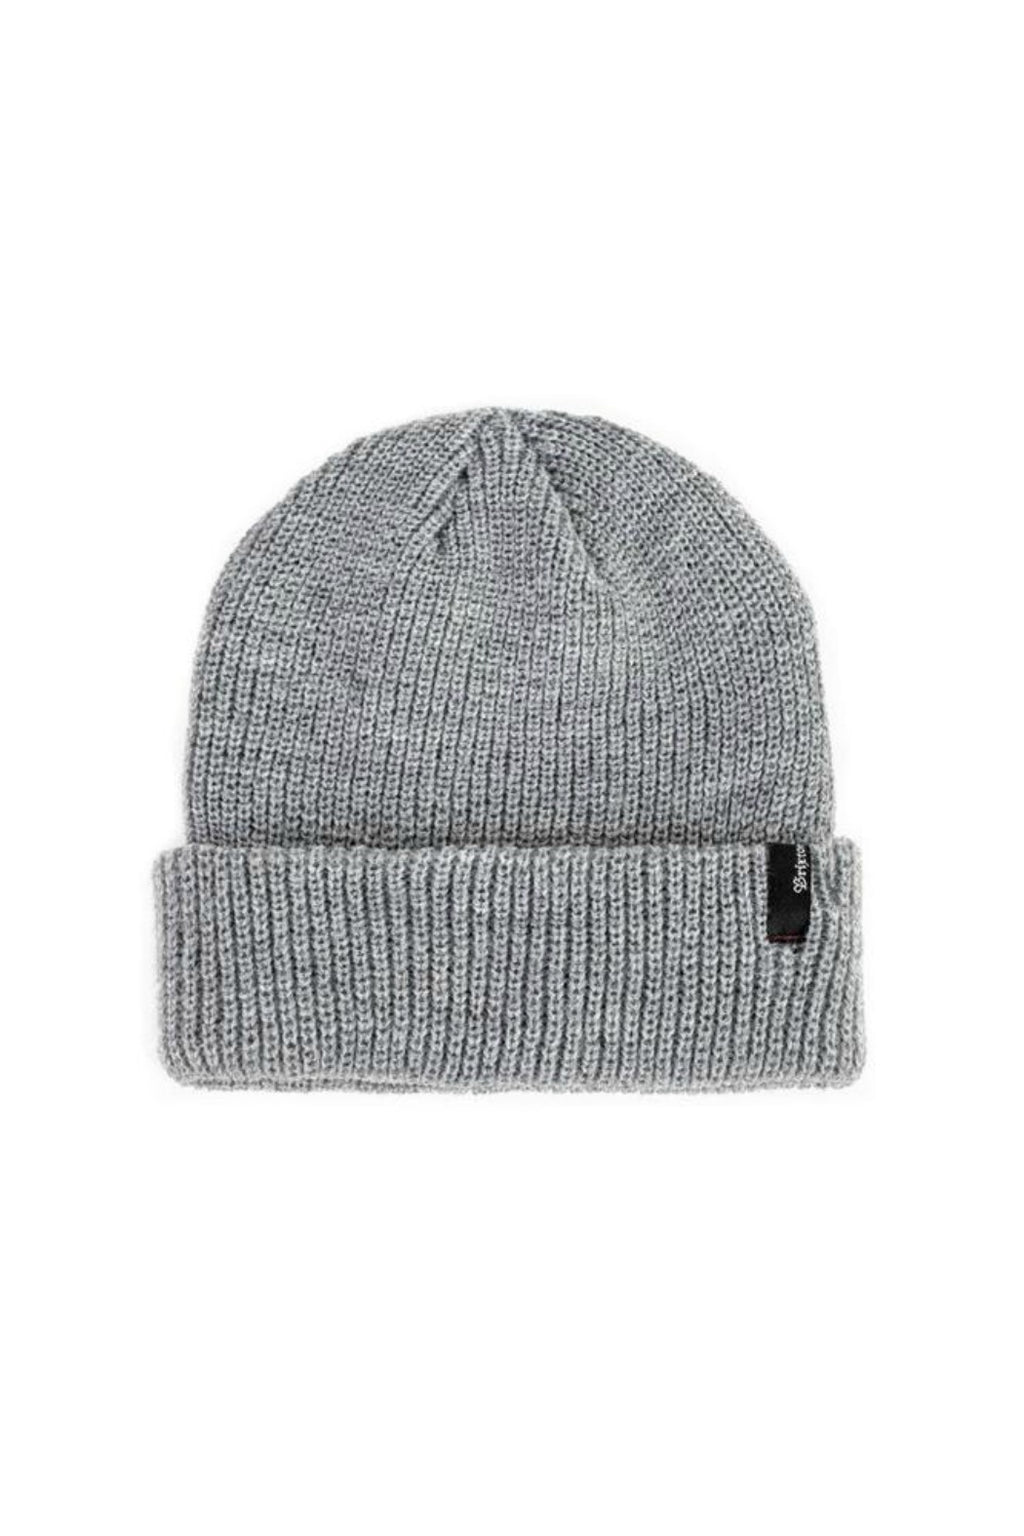 Brixton Heist Beanie in Light Heather Grey